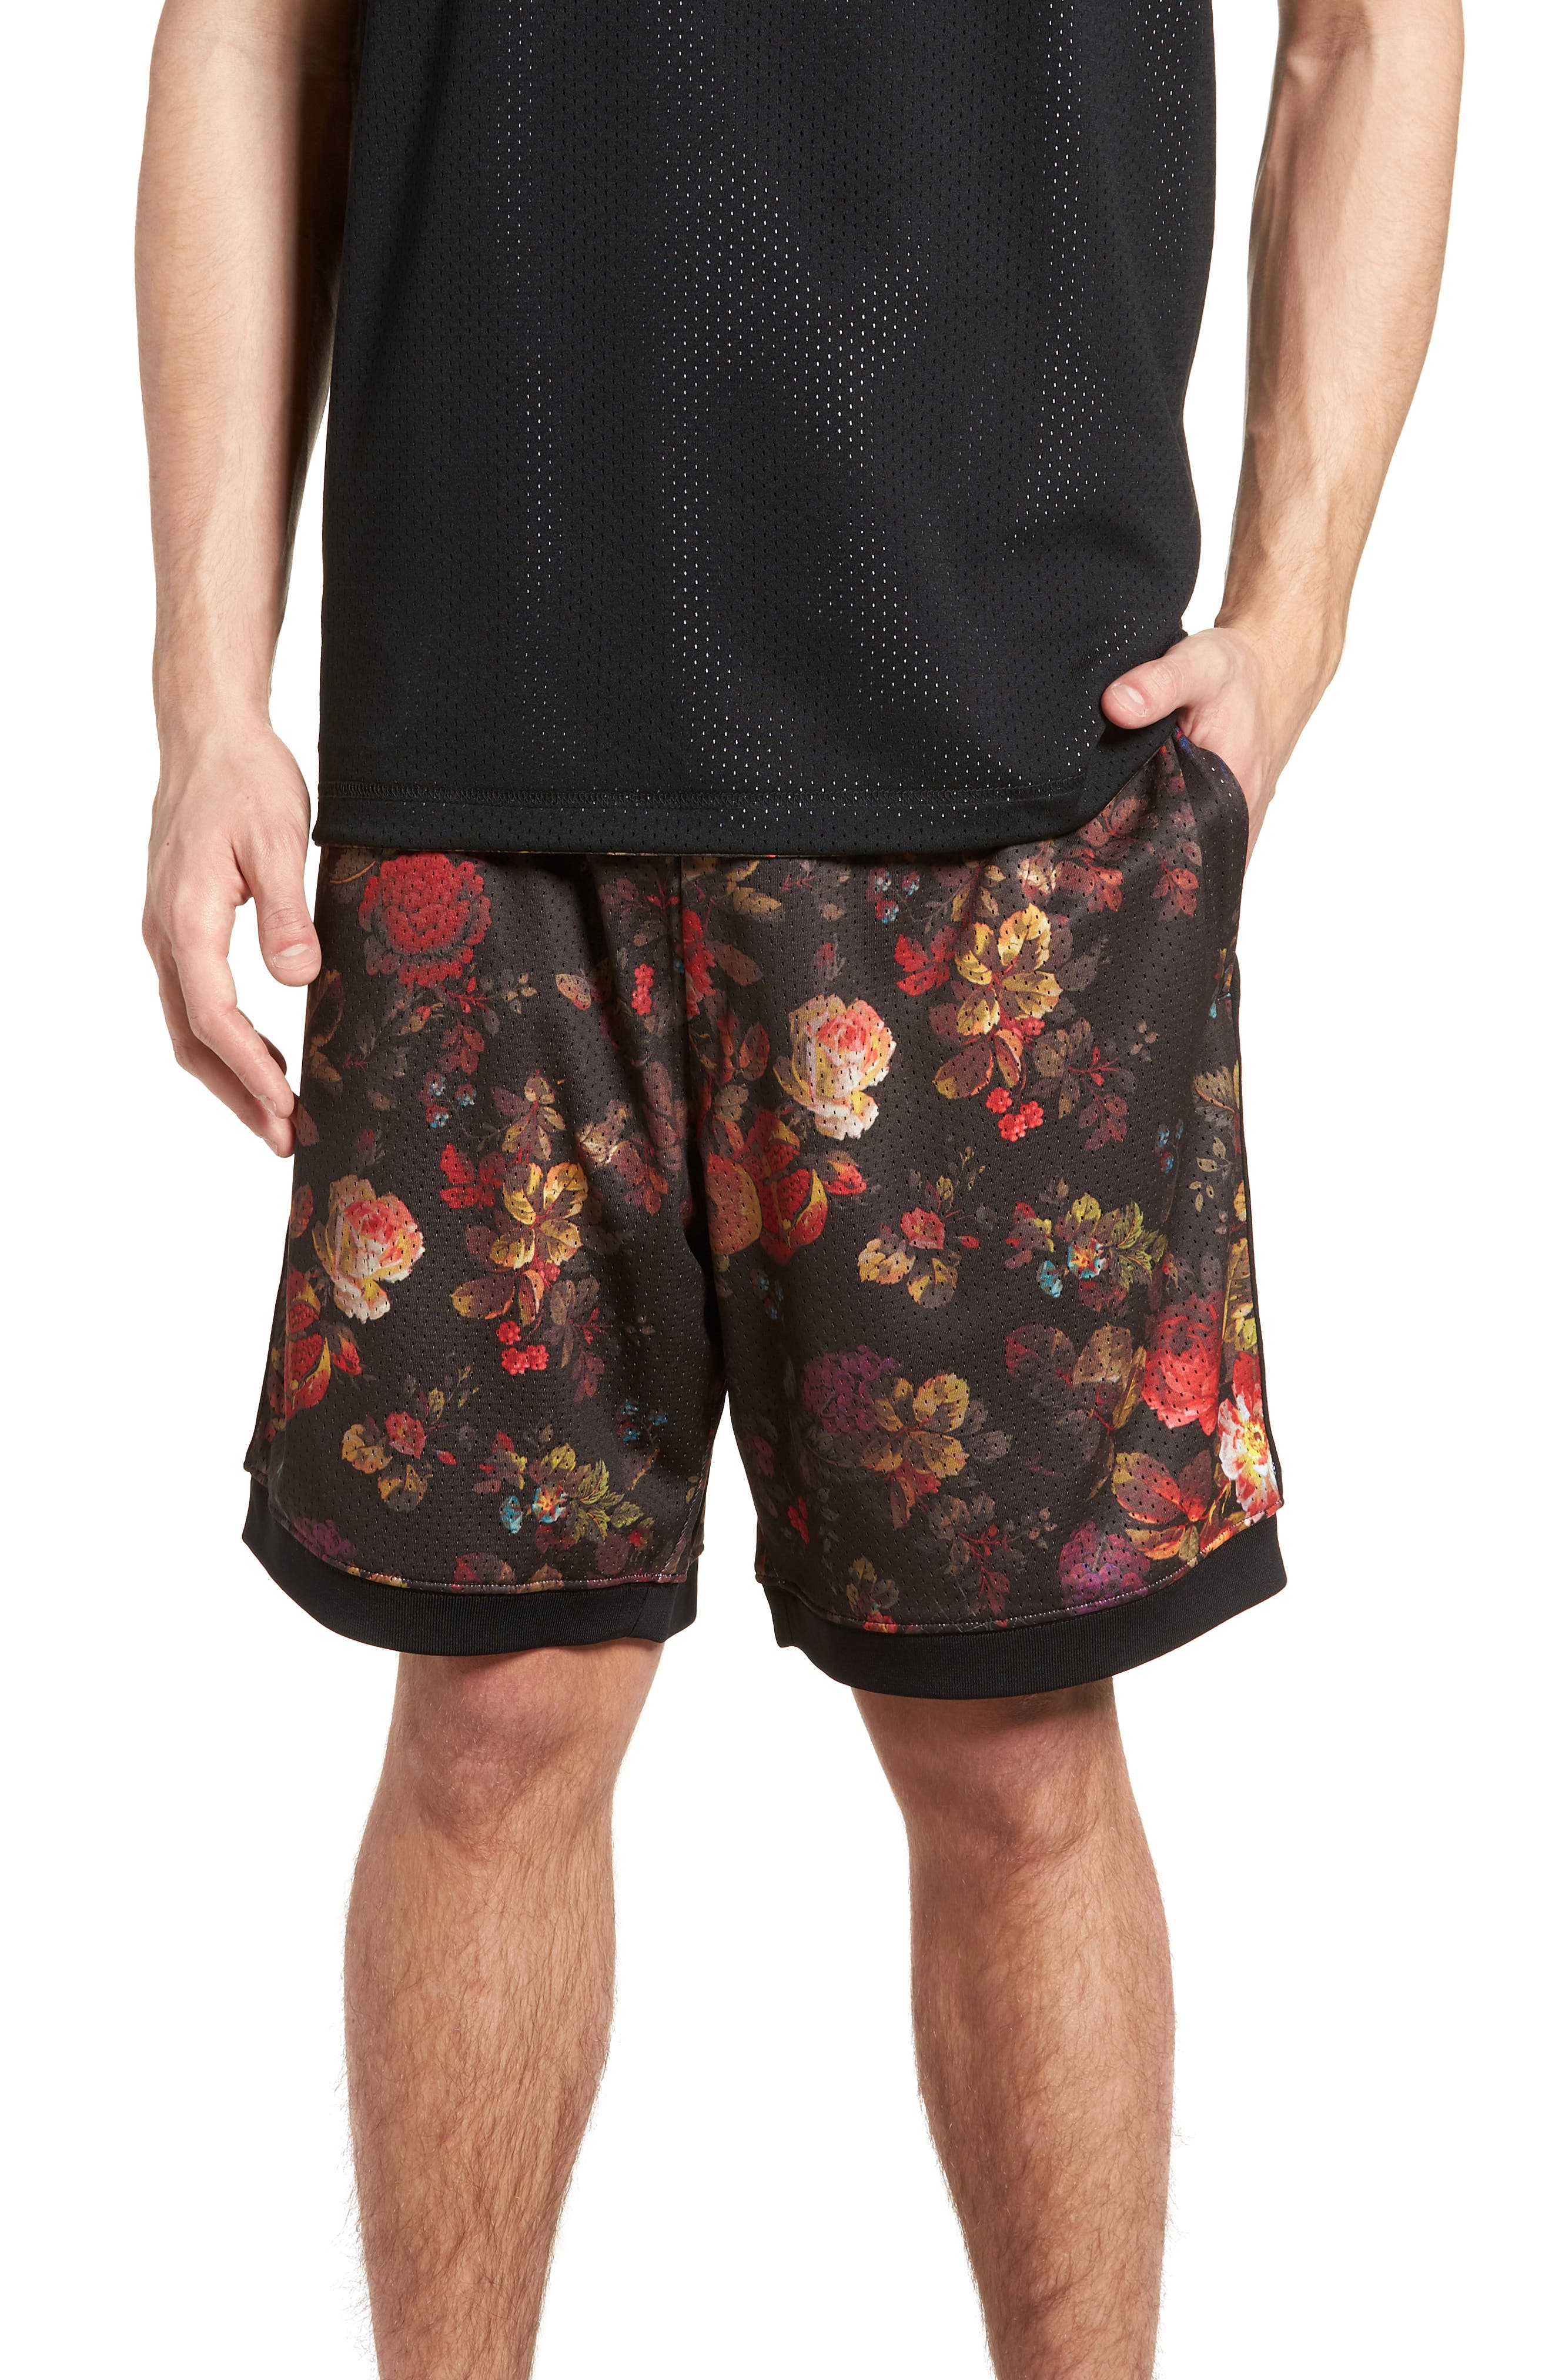 Dry Floral Shorts,                         Main,                         color, BLACK/ WHITE